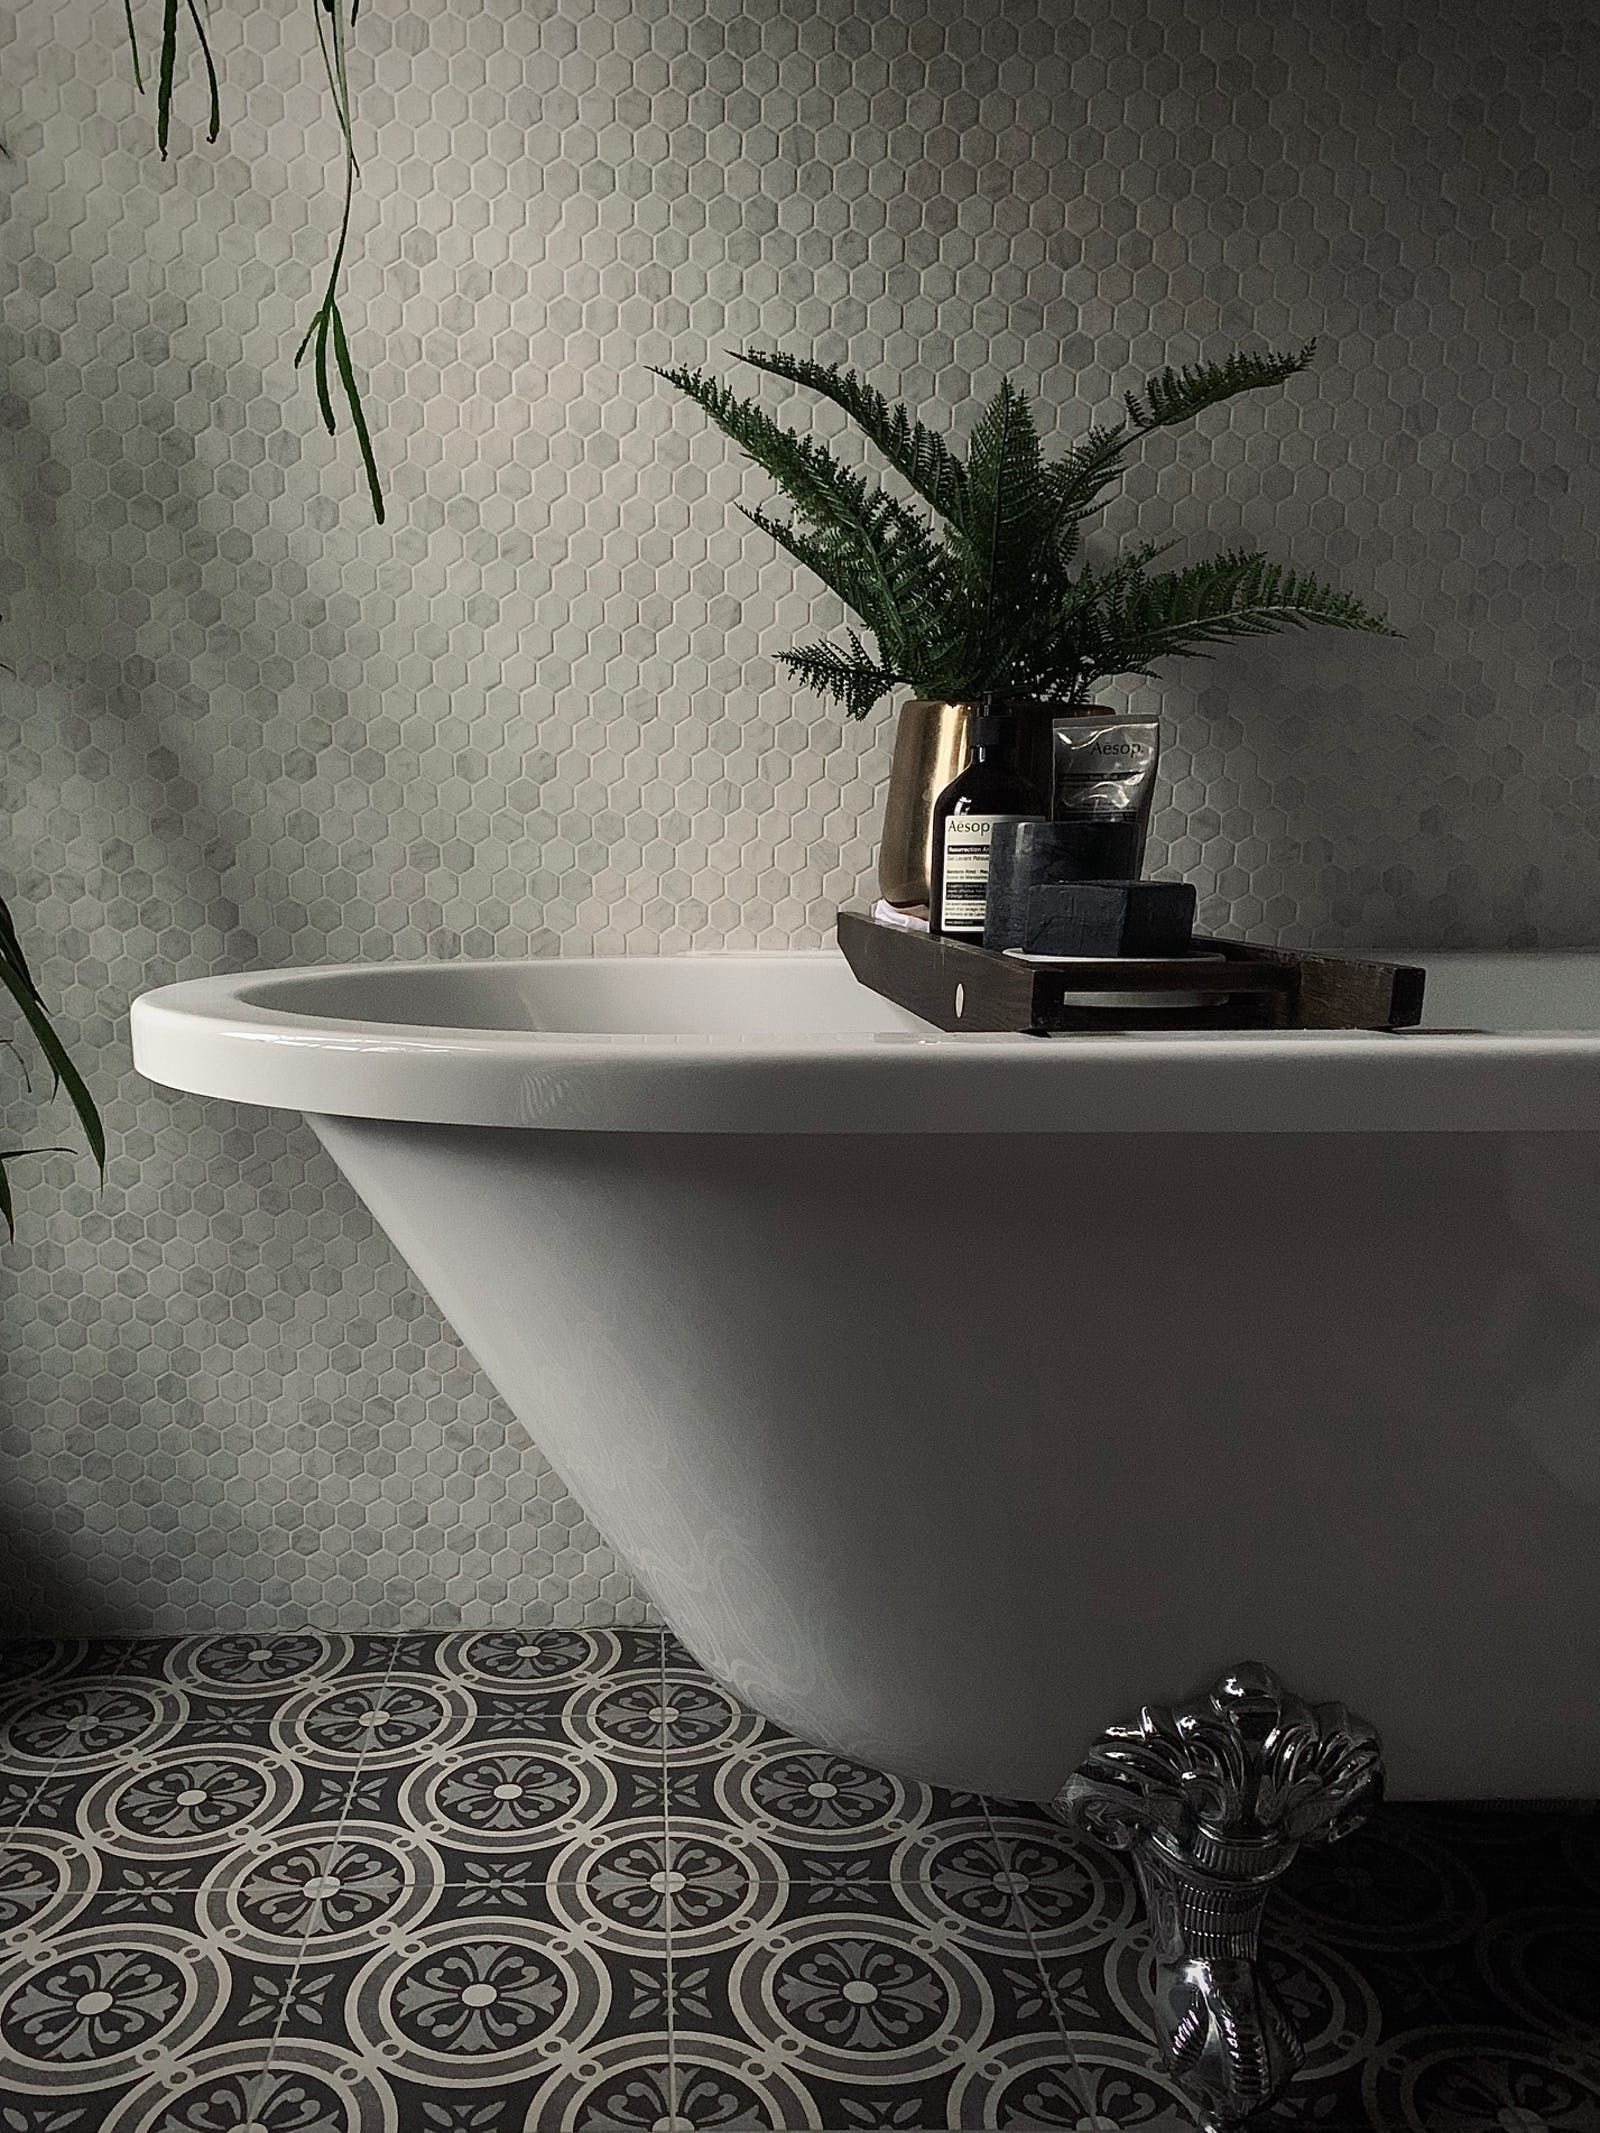 Bathtub in a tiled bathroom with some details